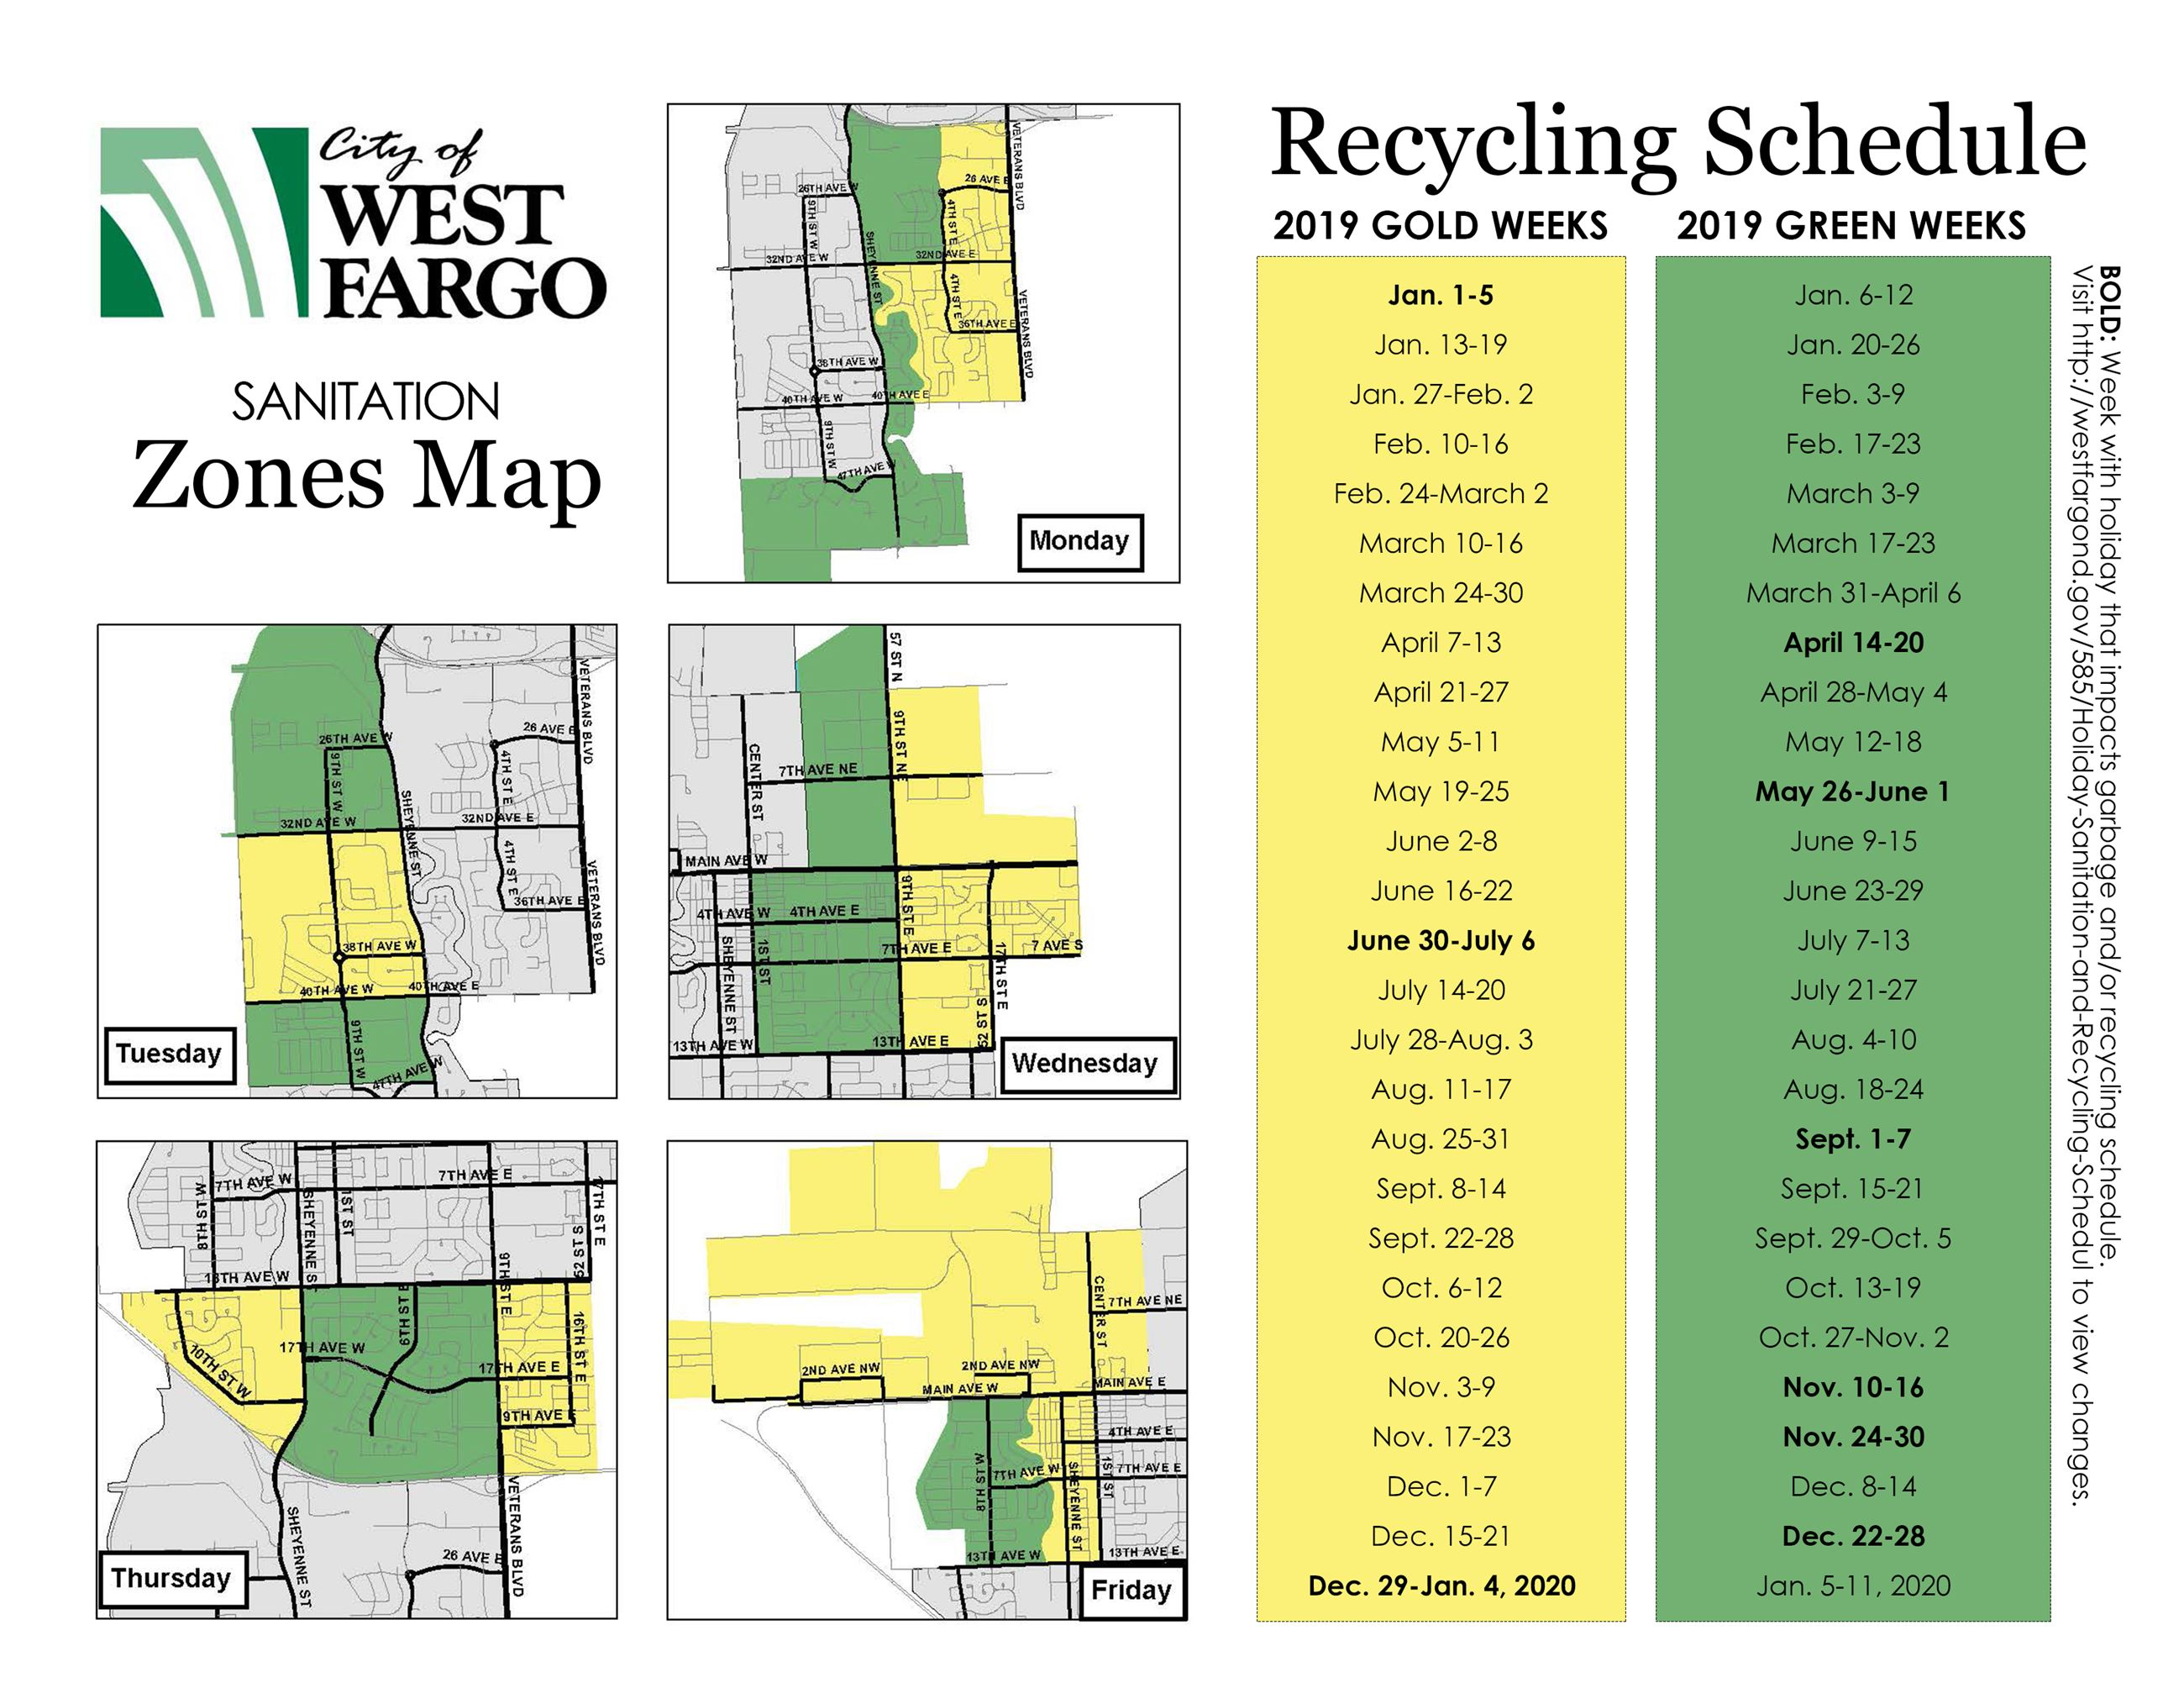 2019 Sanitation Map and Recyling Zones